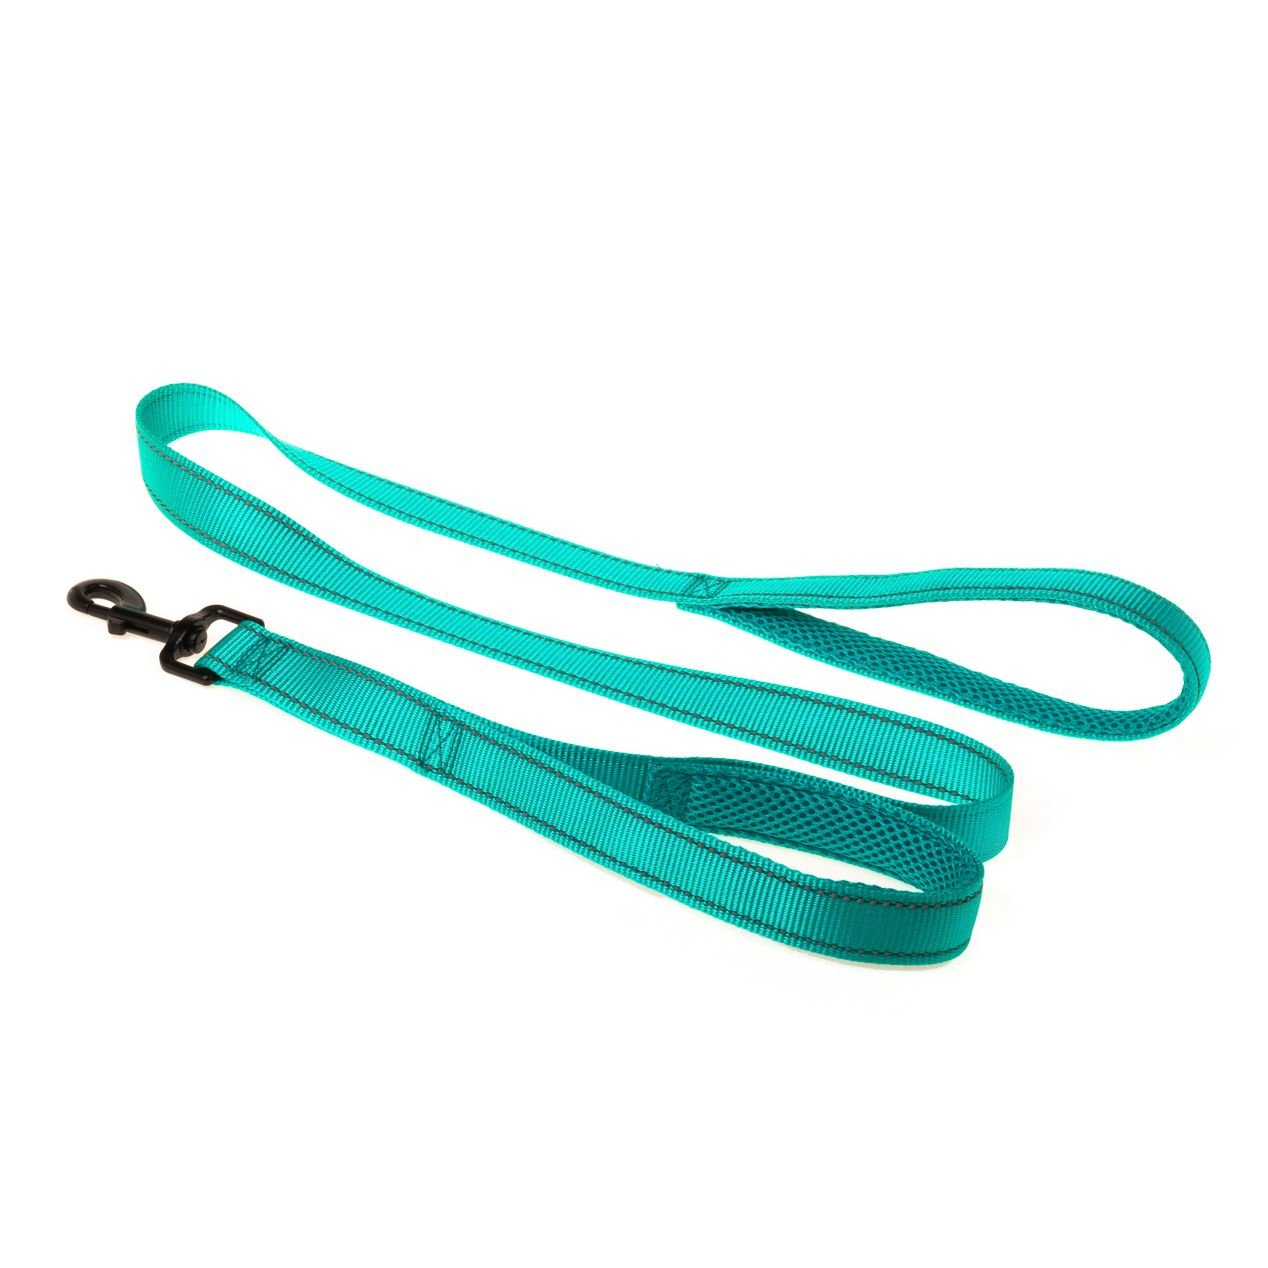 Darkturquoise Comsaf Double Control Dog Leash with Padded Traffic Handle 4 Ft Darkturquoise